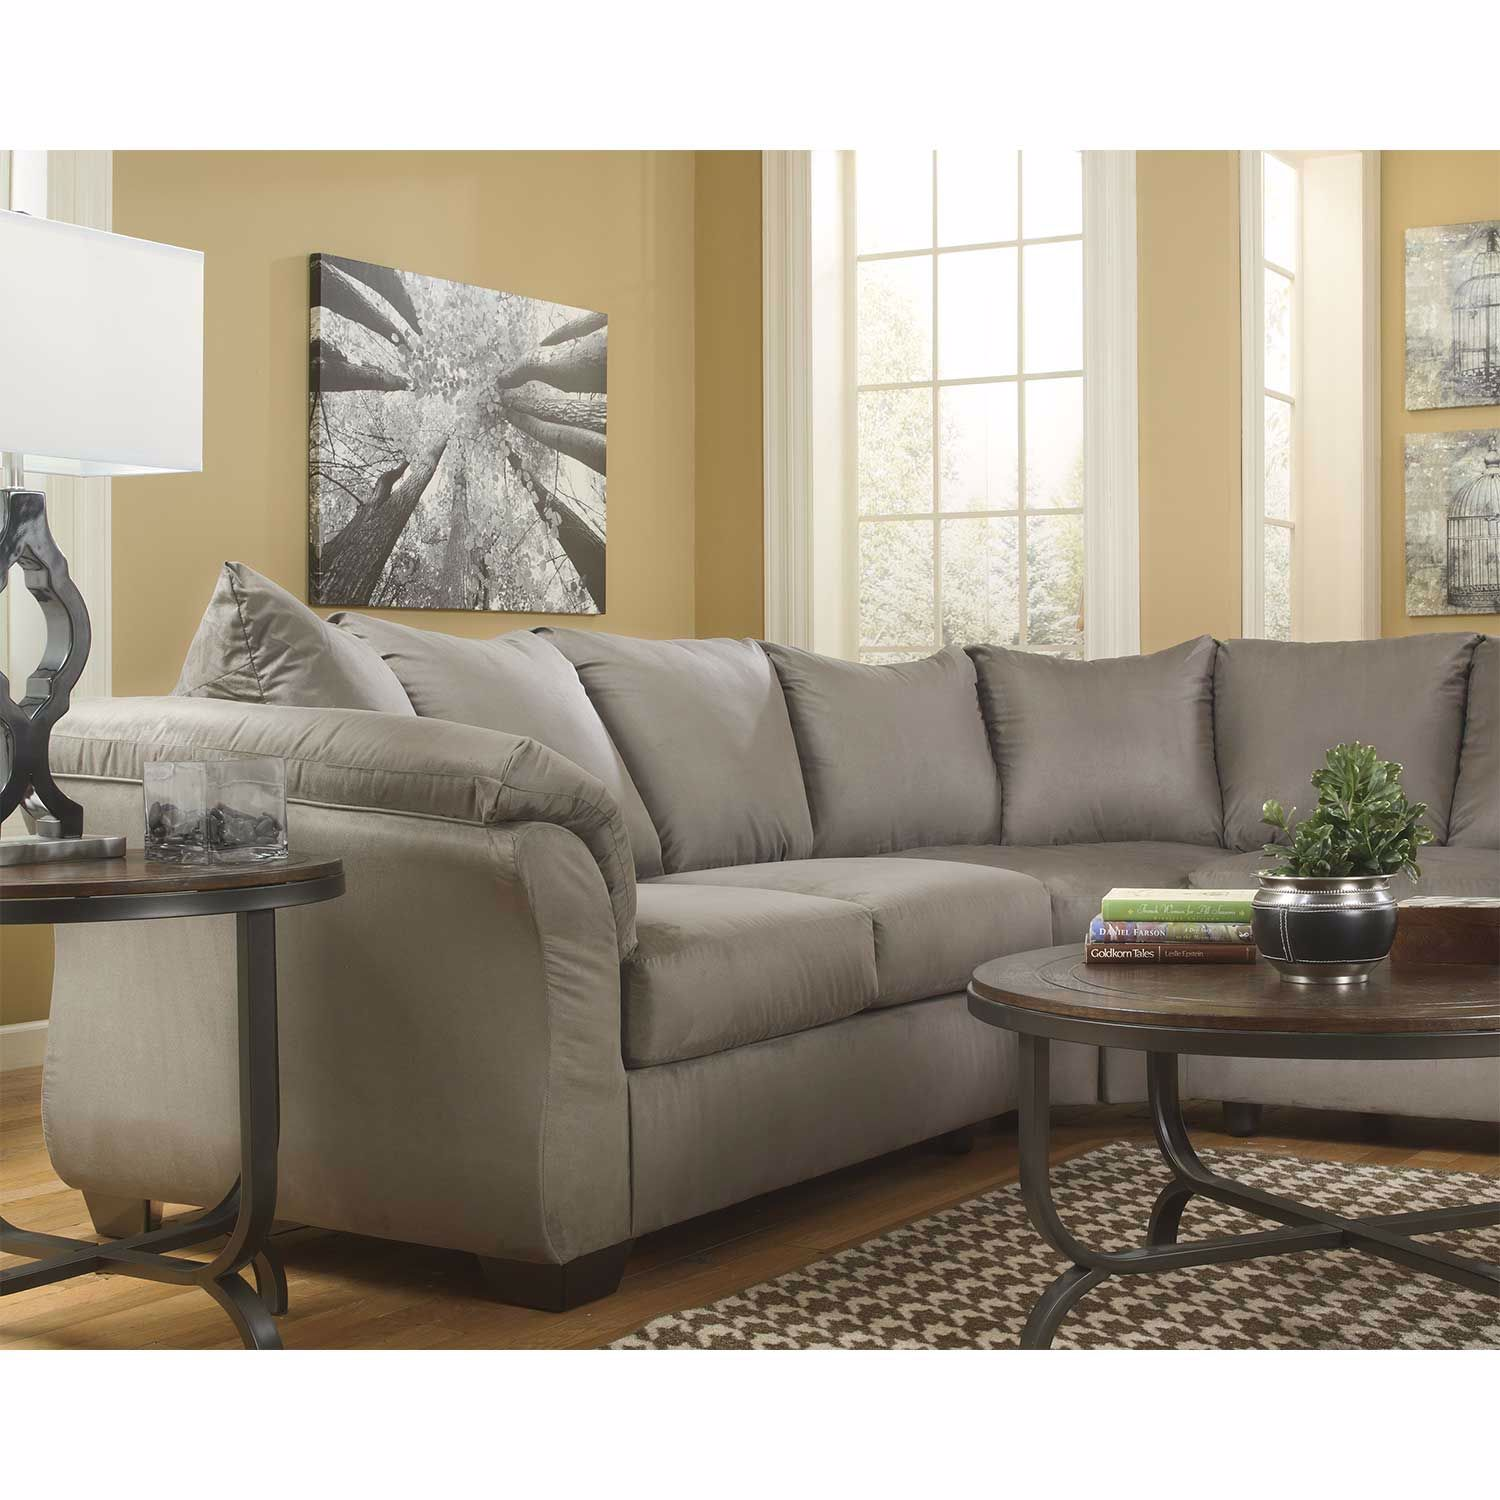 Enjoyable Darcy Cobblestone Gray 2 Piece Sectional W Laf Chaise Gmtry Best Dining Table And Chair Ideas Images Gmtryco